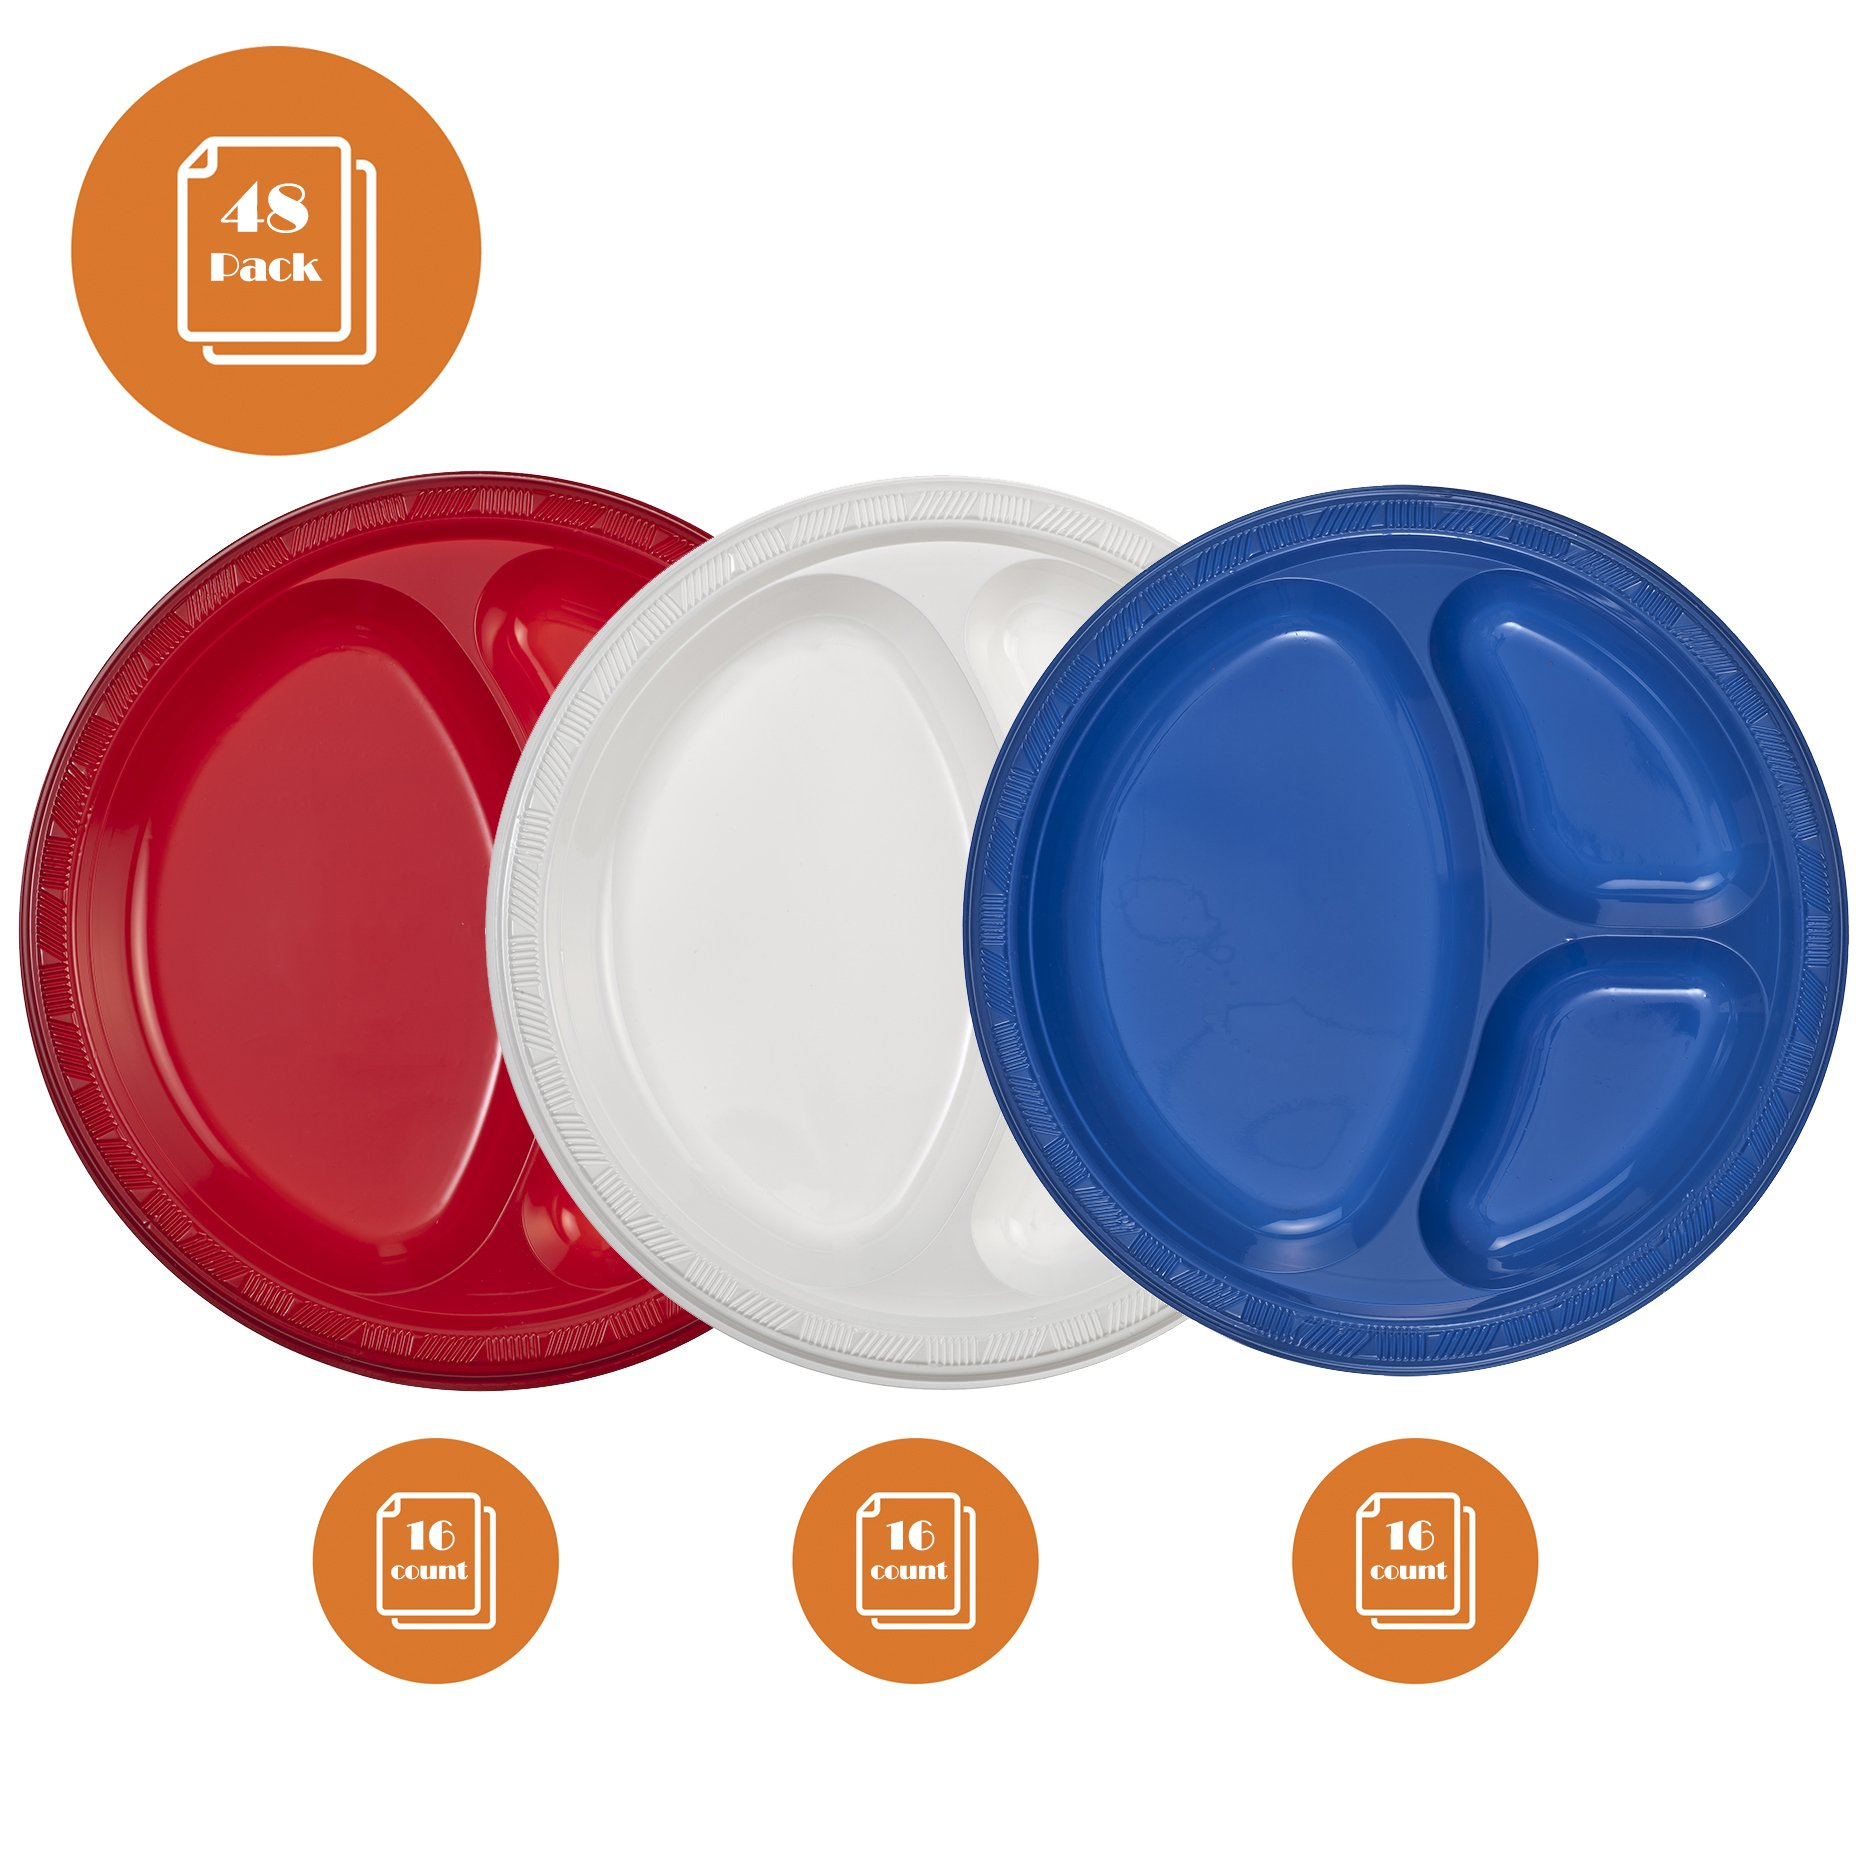 Tiger Chef 48-Pack Red Blue White American 10 inch Plastic 3 Compartment Divided Plates Party Supplies, Includes 16 Red, 16 Blue and 16 White Heavyweight Disposable Dinner Picnic Party Plates Set